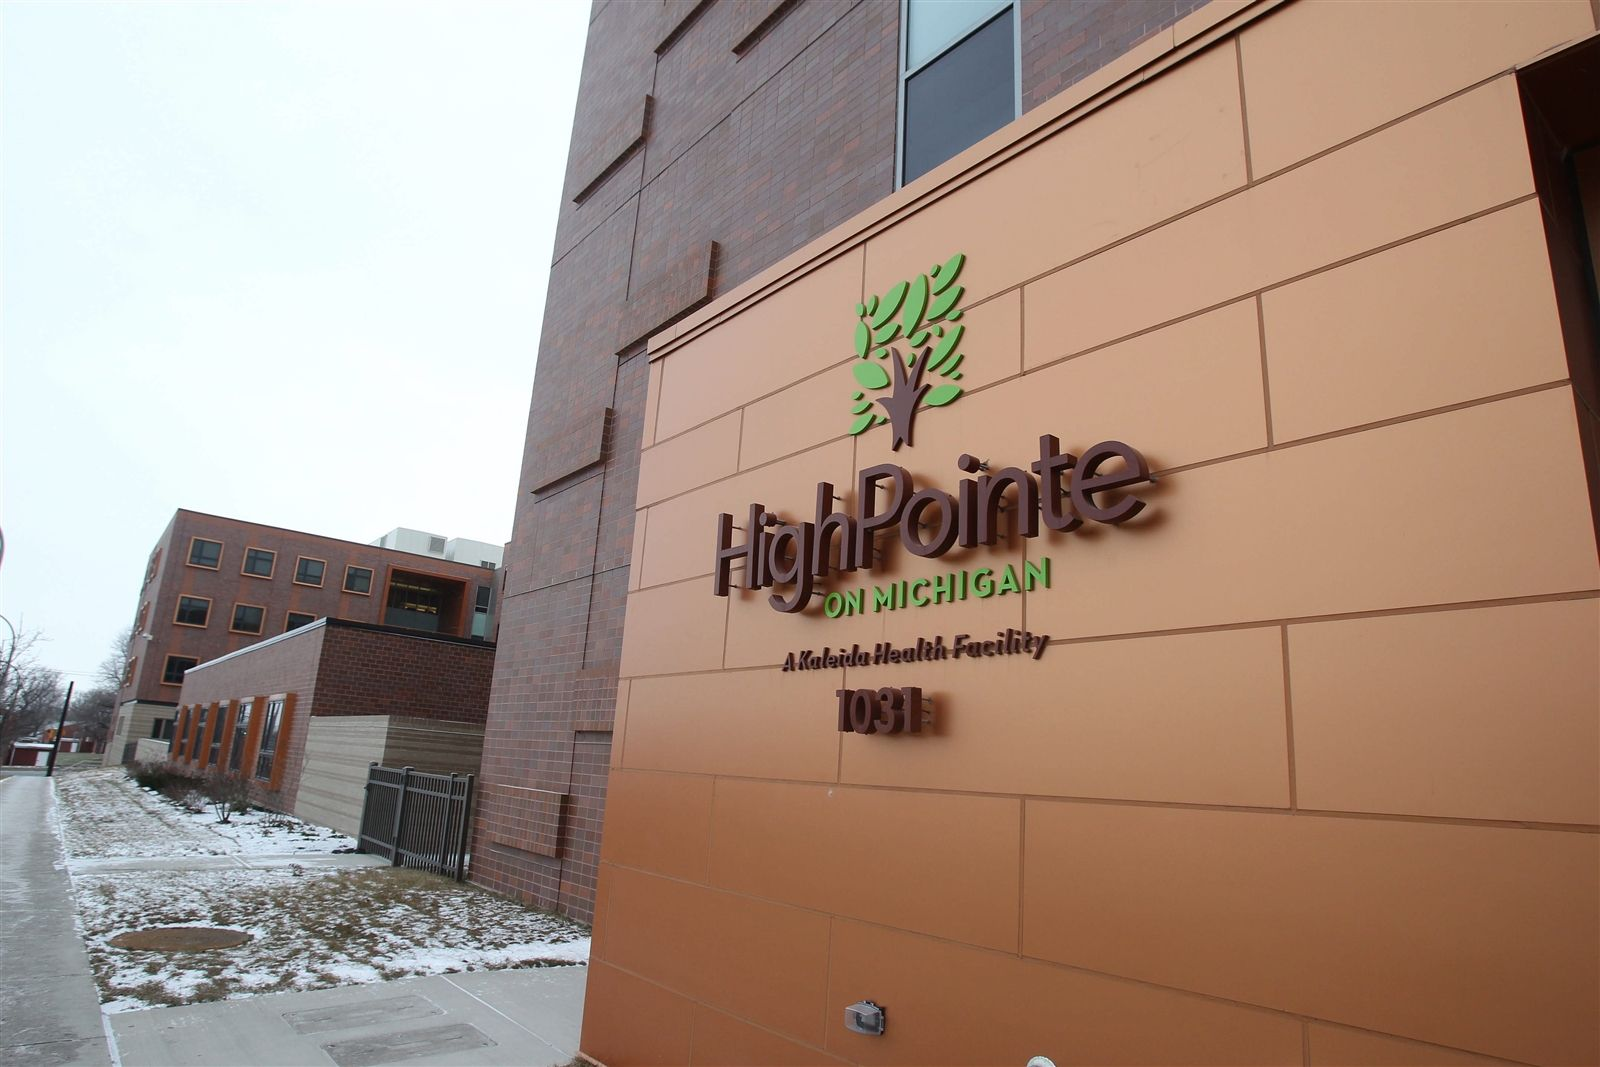 HighPointe on Michigan, at 1031 Michigan Ave. in Buffalo, is owned by Kaleida Health. The state Attorney General's Office put a hidden camera in Larry Myers' room at HighPointe in 2013 to see if HighPointe's staff was feeding him and taking care of him.